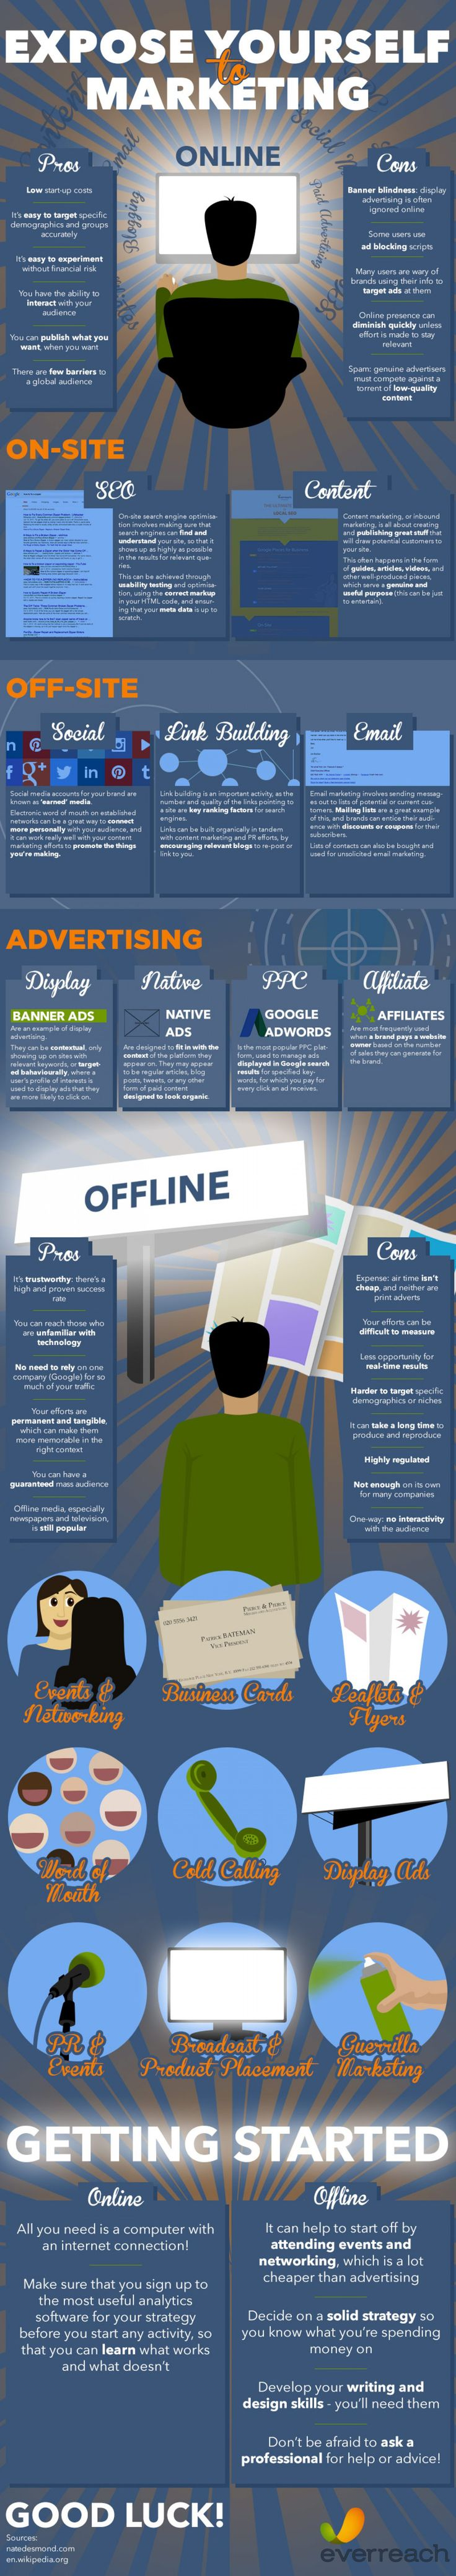 resume branding statement examples%0A There are many different ways to get your brand in front of people  both  online and offline  and its important you try different